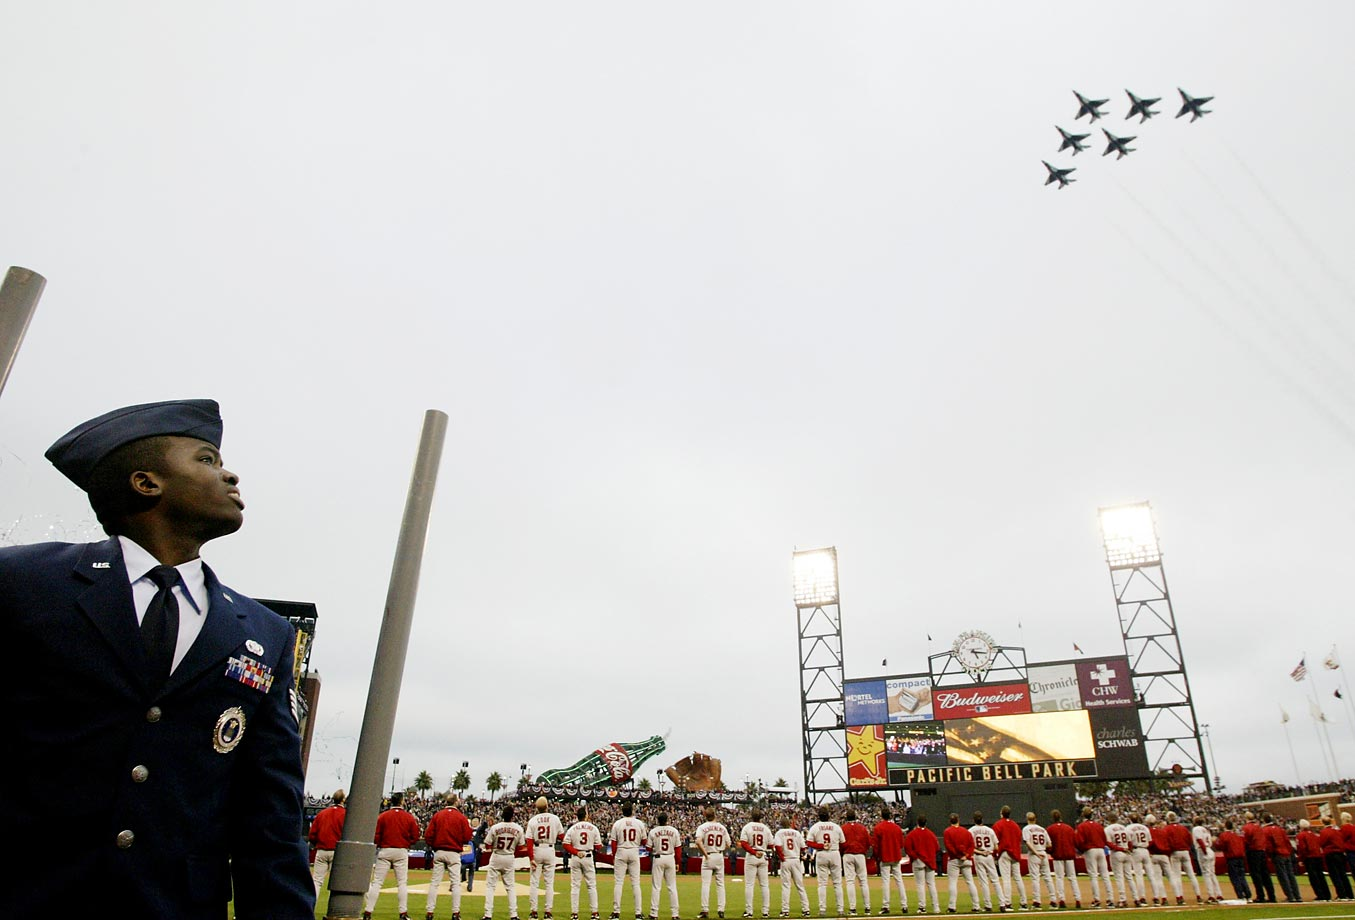 The United States Air Force 'Thunderbirds' fly over the stadium before Game 3 of the 2002 World Series, which featured the San Francisco Giants and Anaheim Angels at Pacific Bell Park in San Francisco.